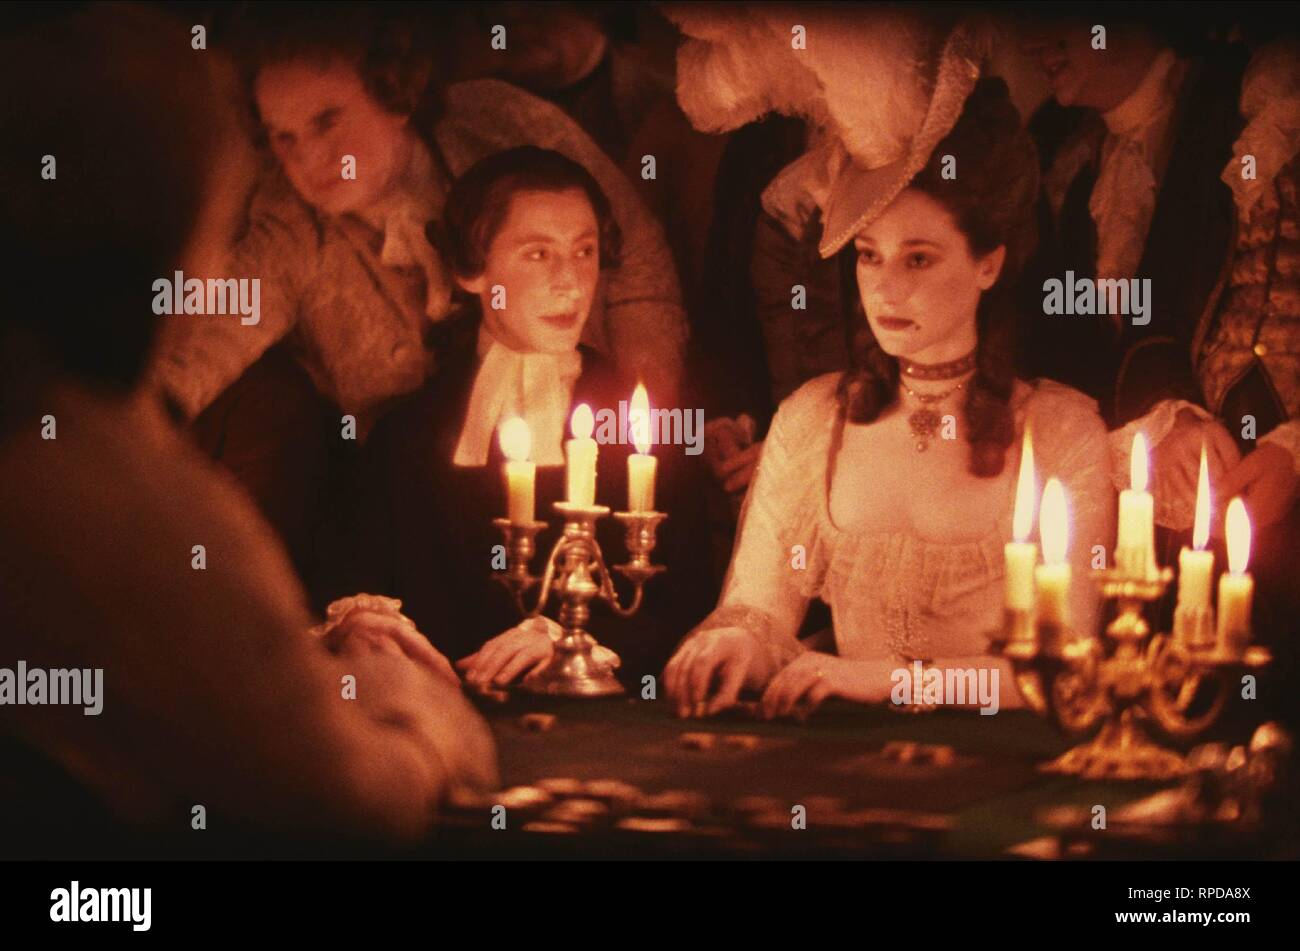 MARISA BERENSON, BARRY LYNDON, 1975 - Stock Image